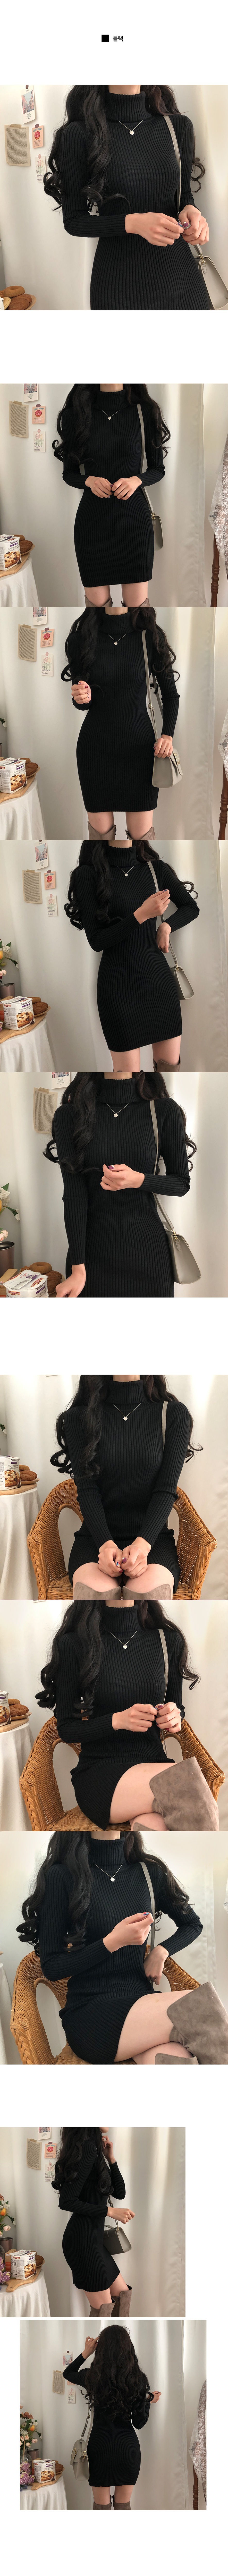 Rosena Poke Turtleneck Ribbed Dress